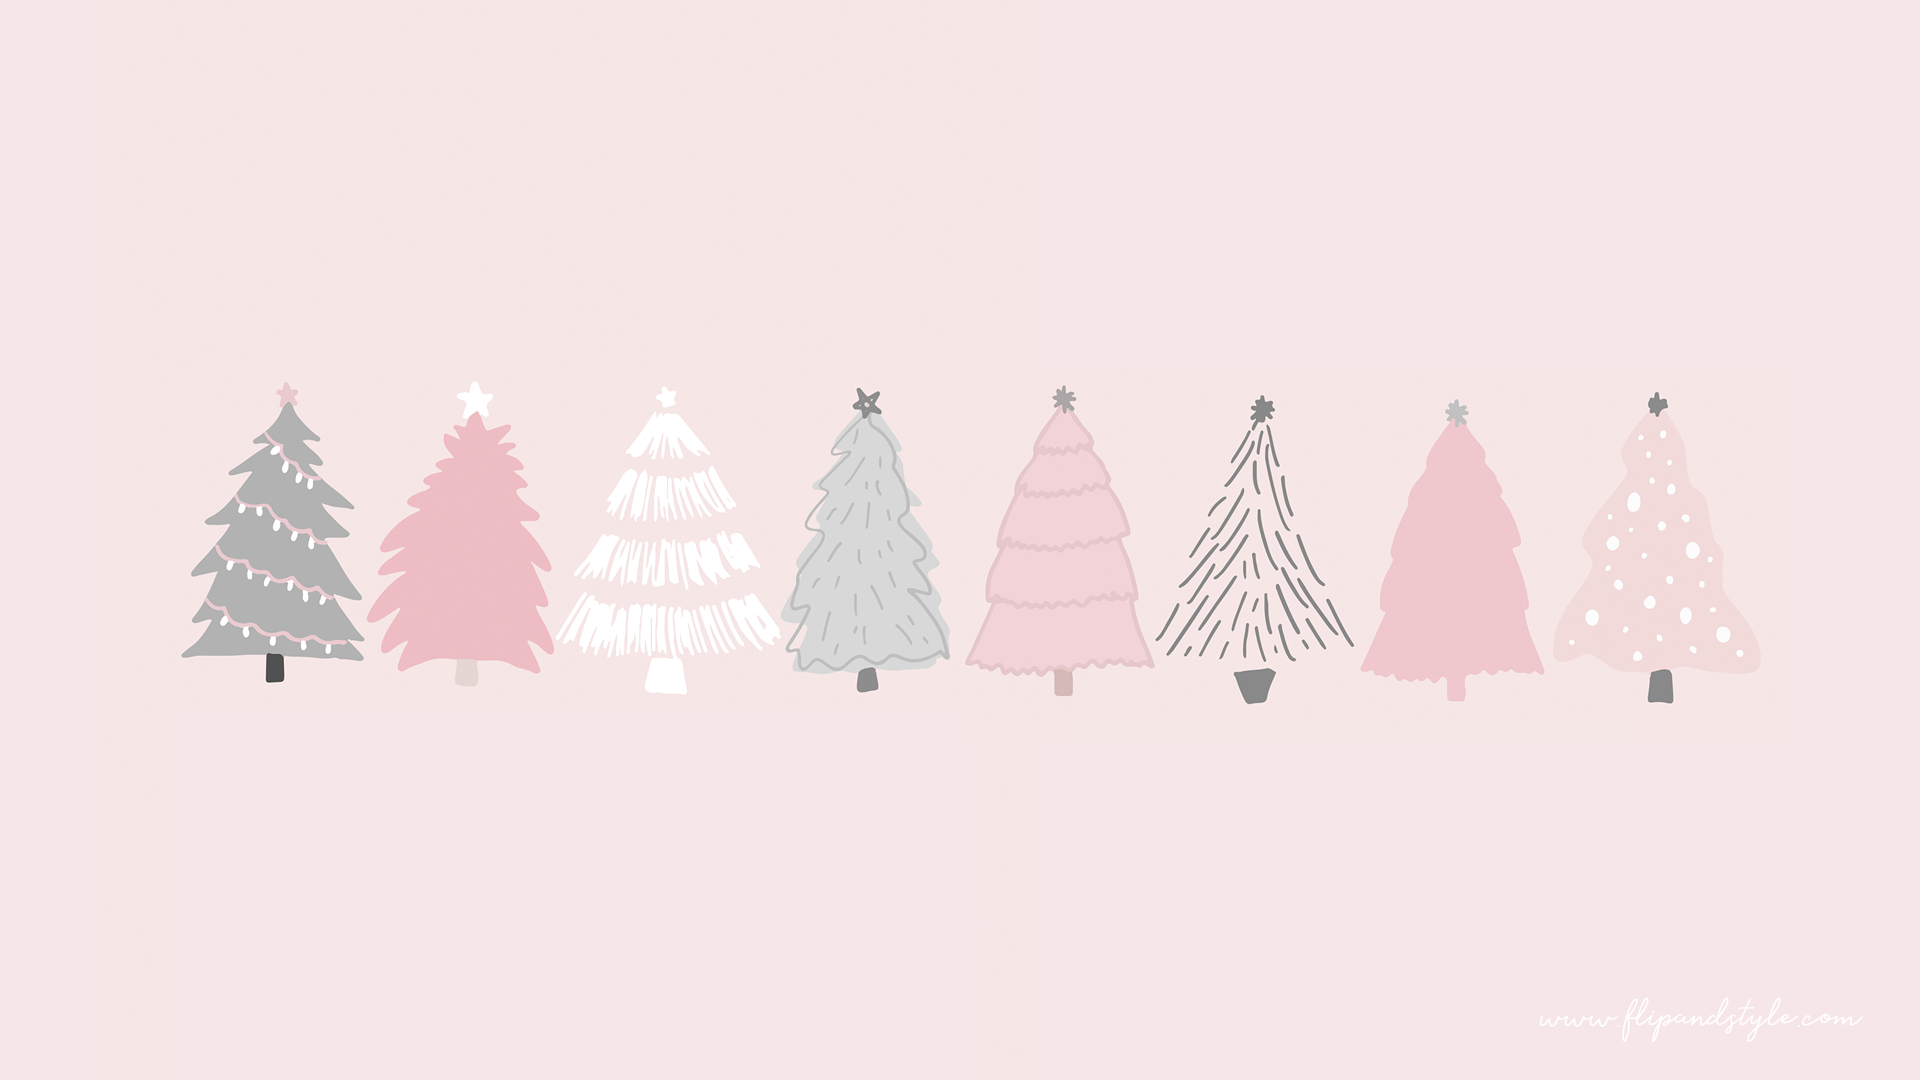 Free Wallpapers Backgrounds Christmas Festive By Christmas Desktop Wallpaper Free Wallpaper Backgrounds Christmas Wallpapers Tumblr